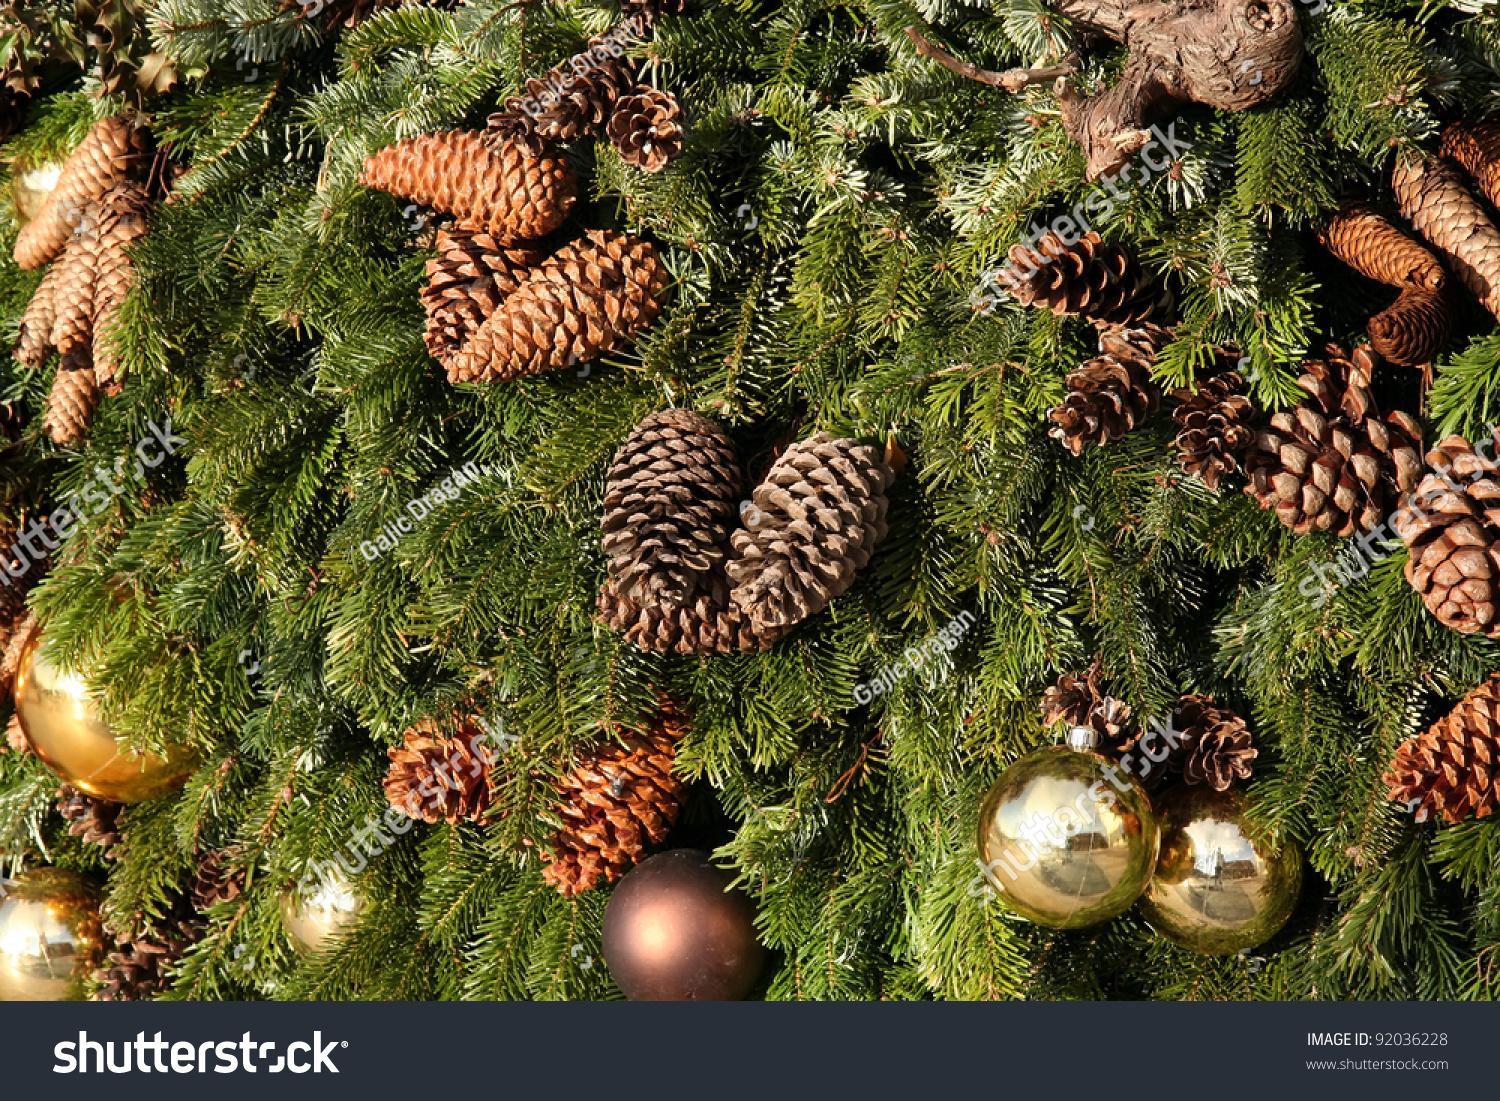 christmas tree decorations christmas decorations with pine cones - Pine Cone Christmas Tree Decorations